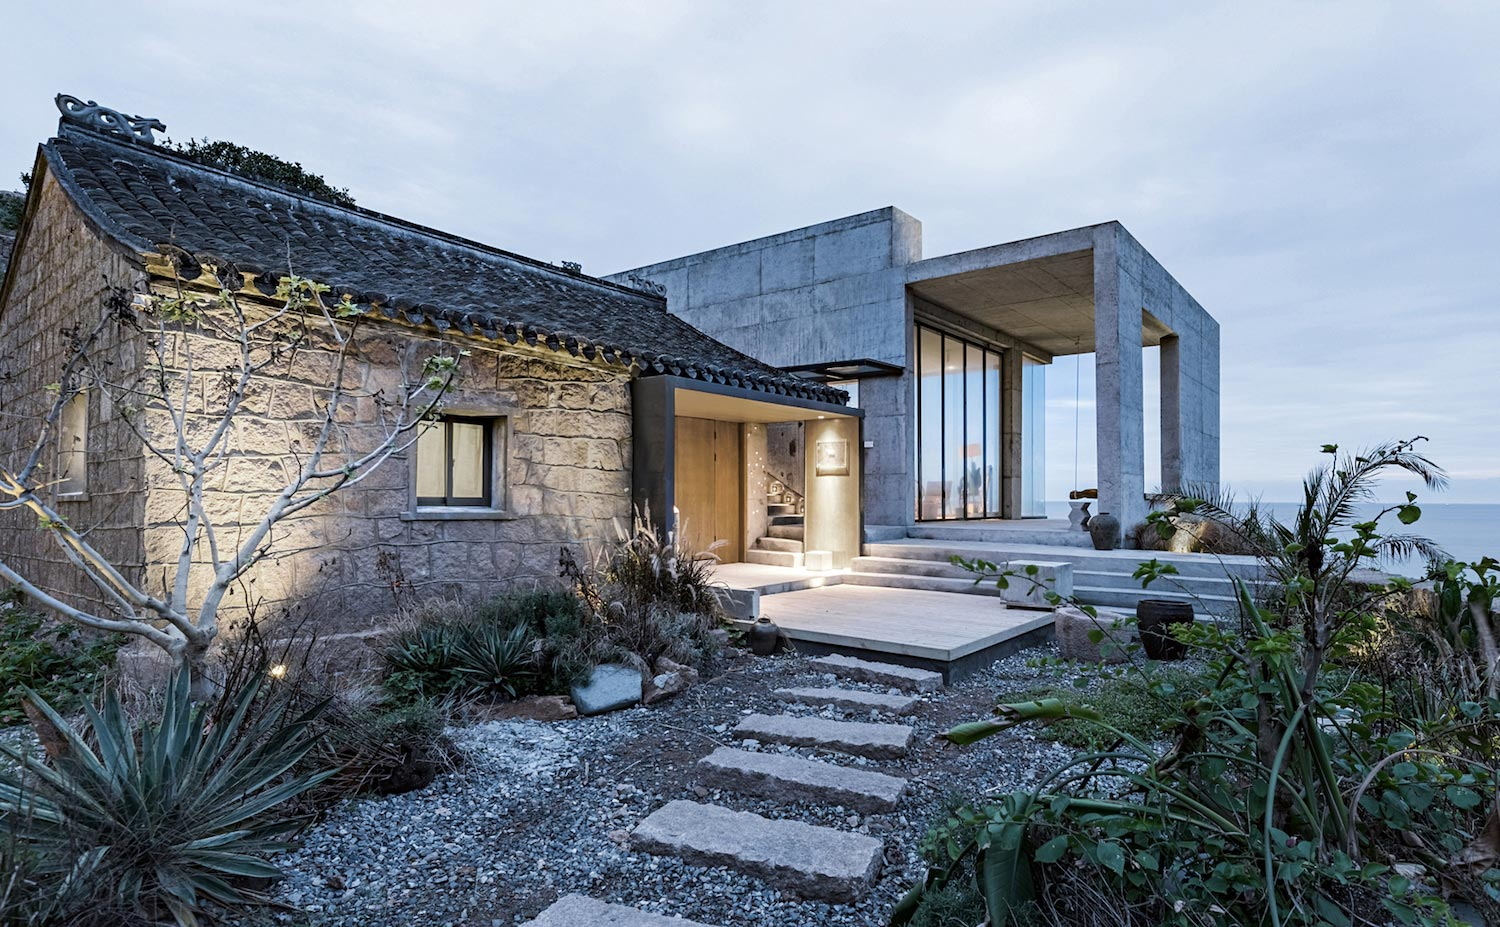 Rural house renovation where modernday aesthetics and old remains thrive in coexistence